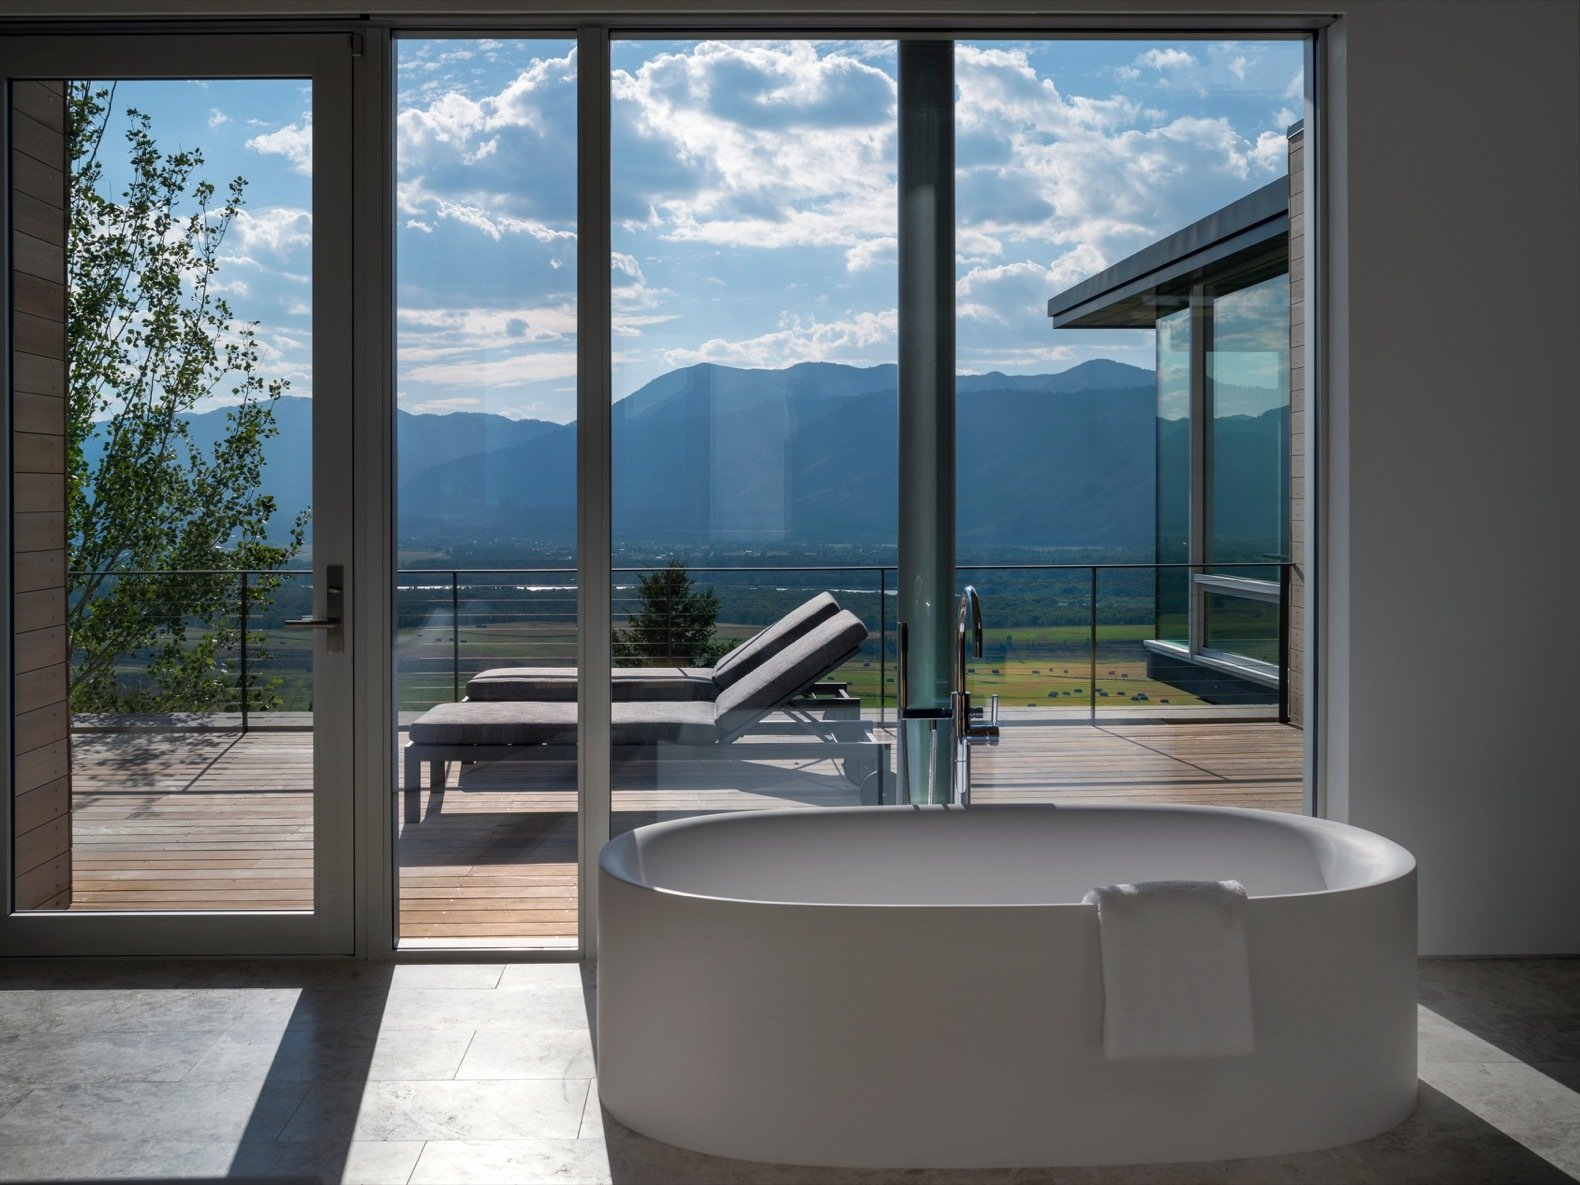 Bath Room and Freestanding Tub A freestanding pub offers a soak with a view.  Photo 13 of 17 in A Modern House Accentuates a Sensational Wyoming Landscape